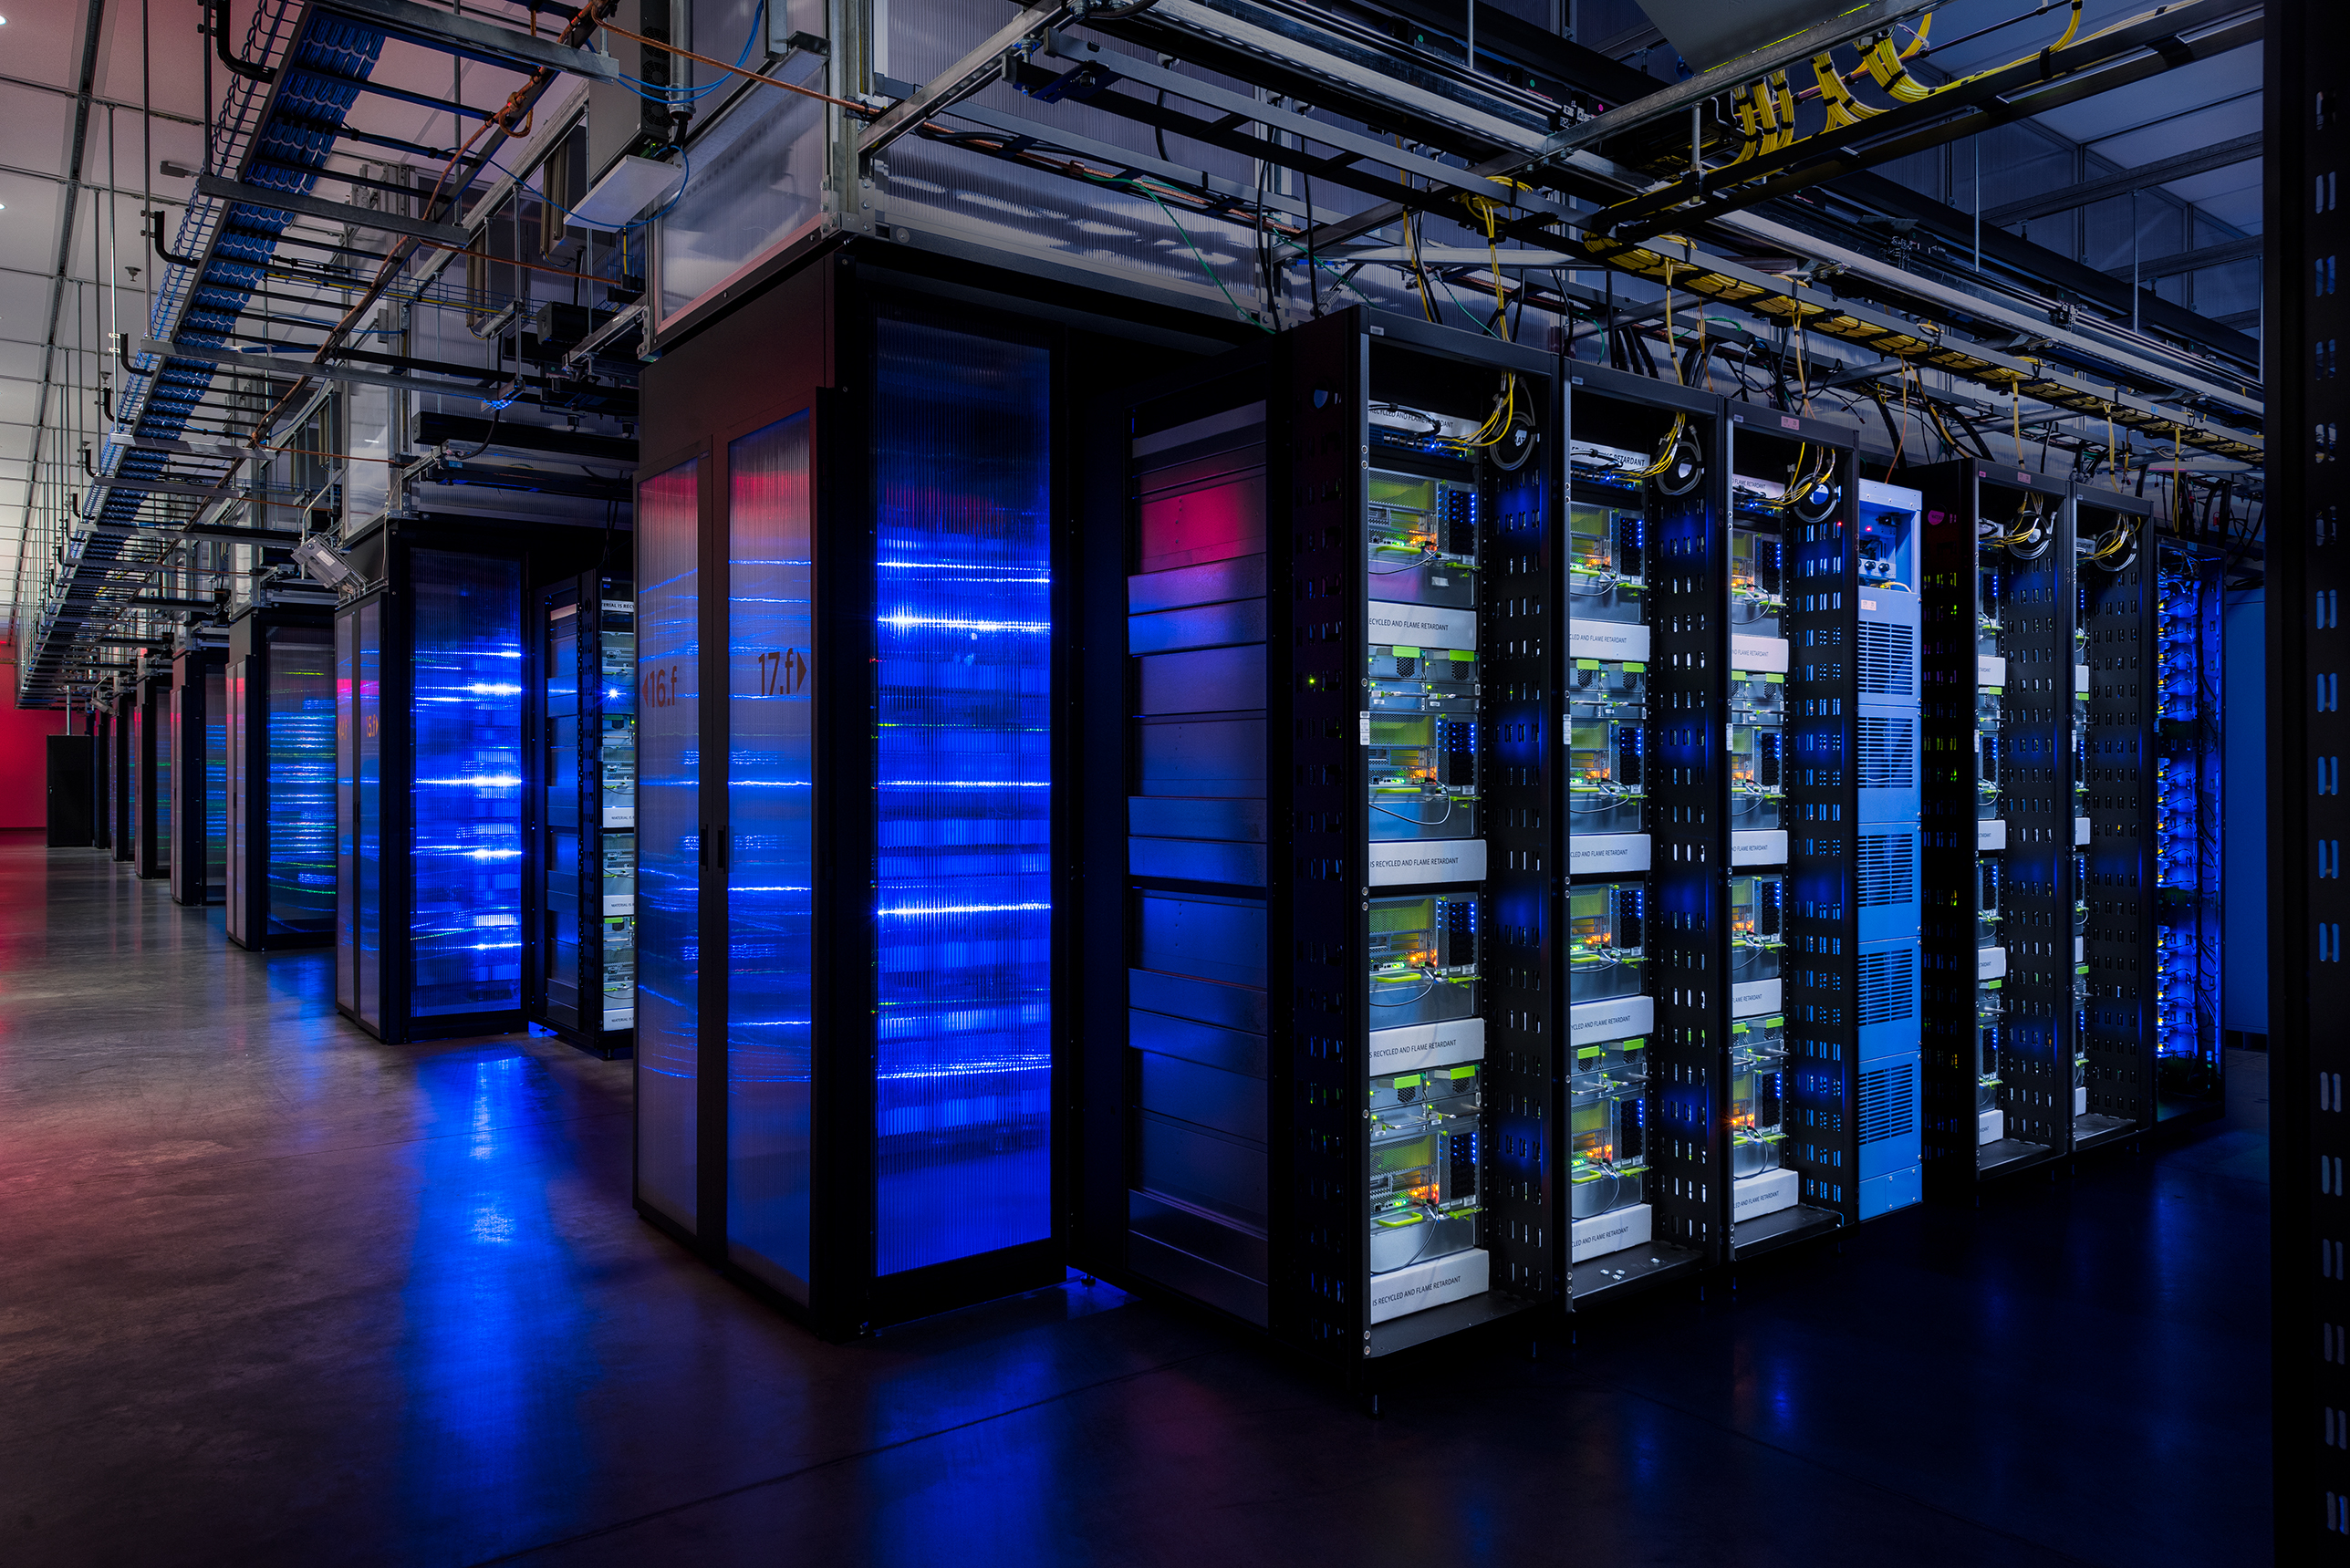 Facebook's new servers for artificial intelligence research, inside the company's data center in Prineville, Oregon.